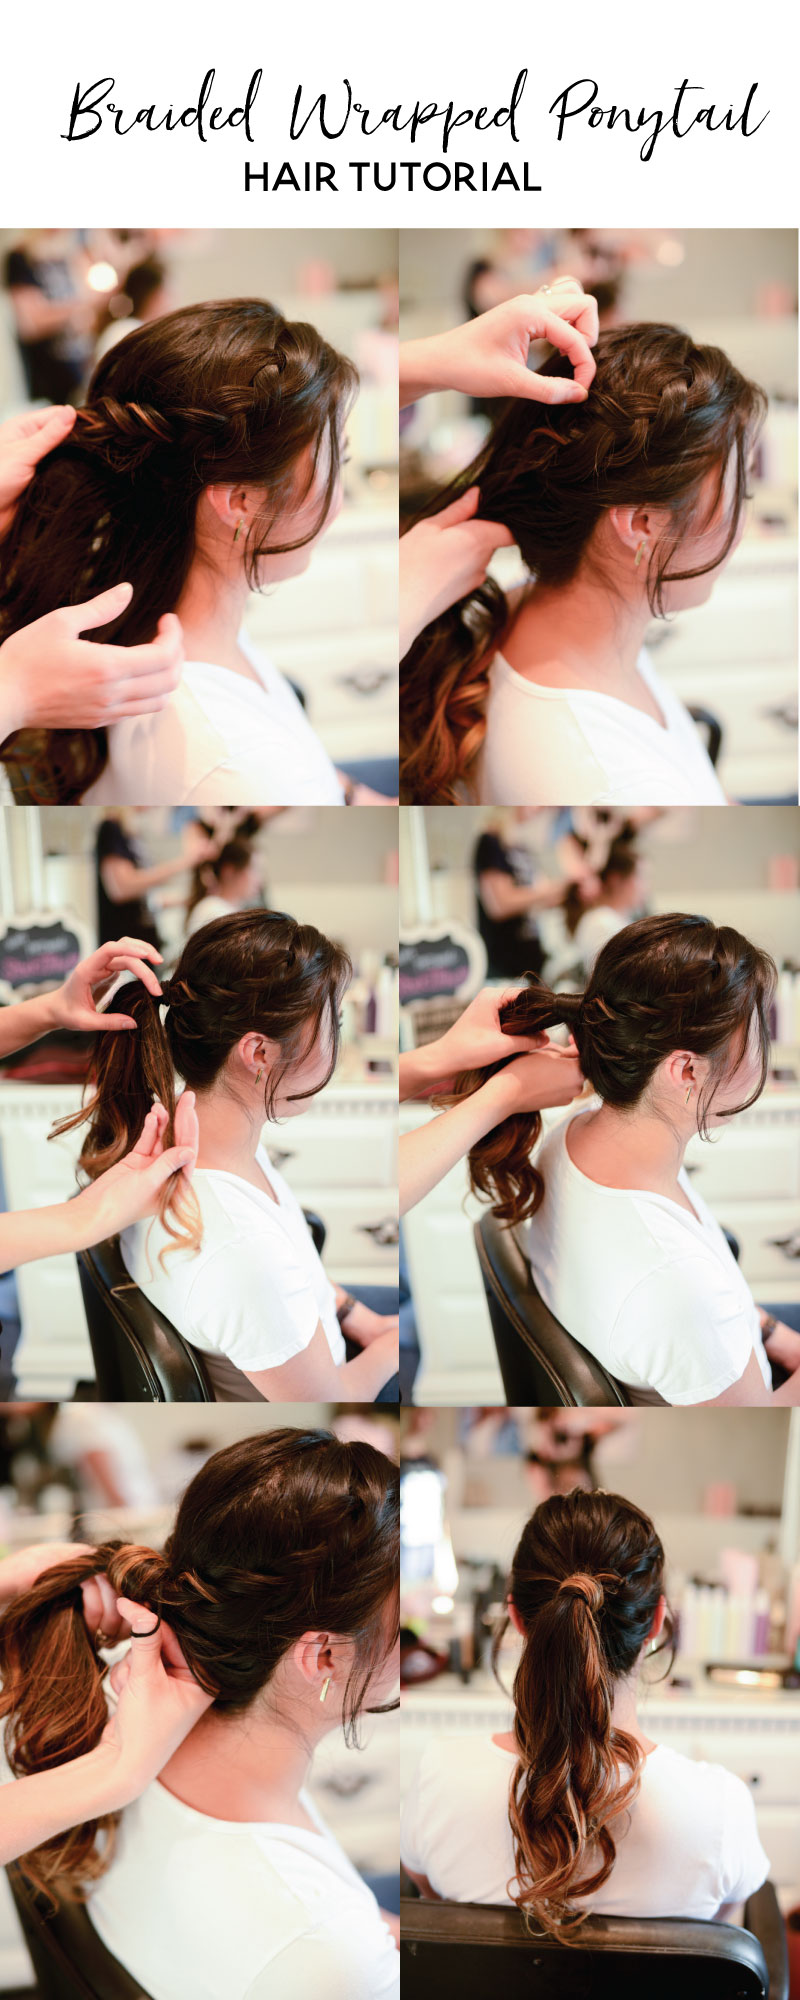 Braided-Wrapped-Ponytail-Hair-Tutorial